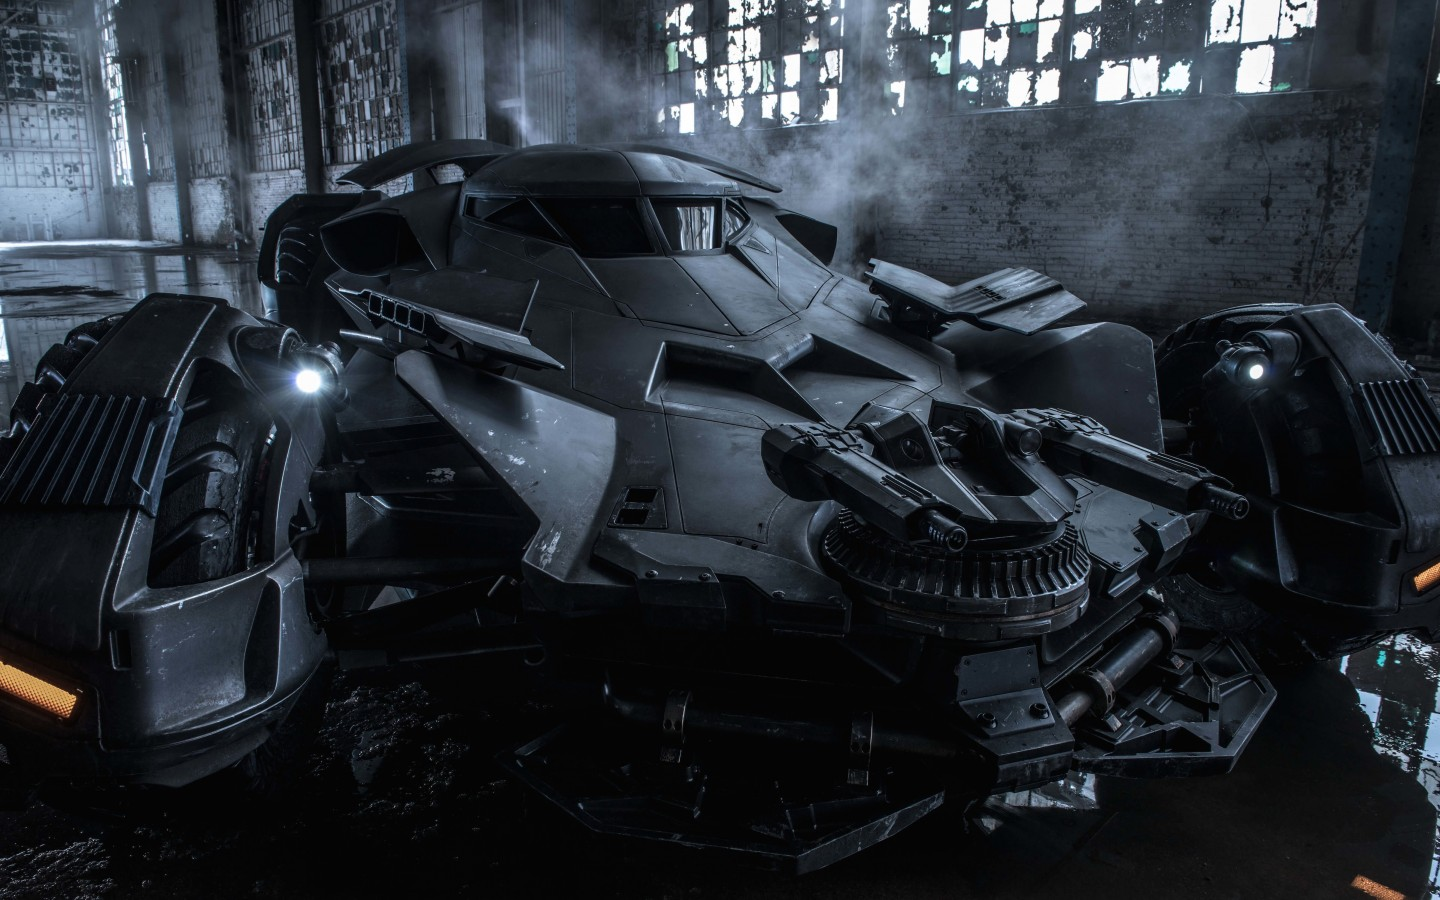 The Batman v Superman Batmobile Wallpaper for Desktop 1440x900